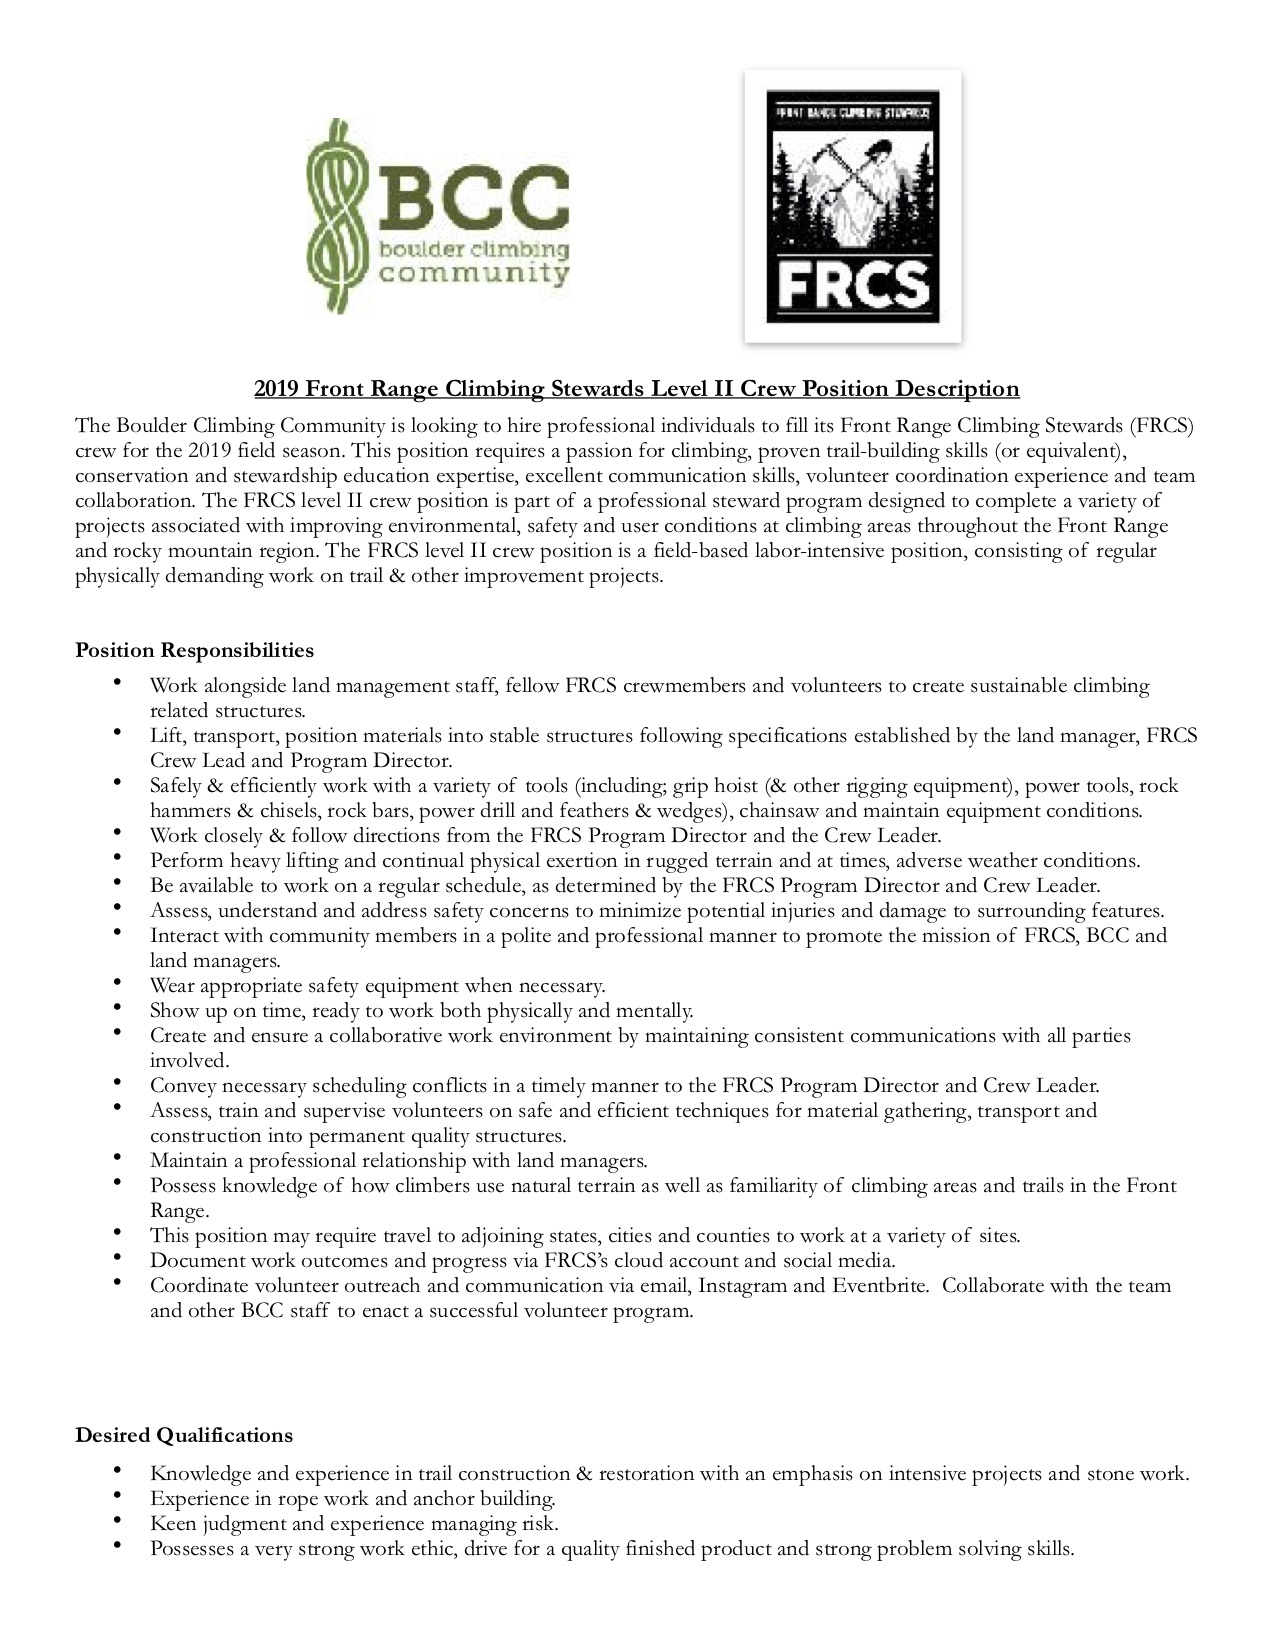 2019 FRCS Level II crew position description.jpg